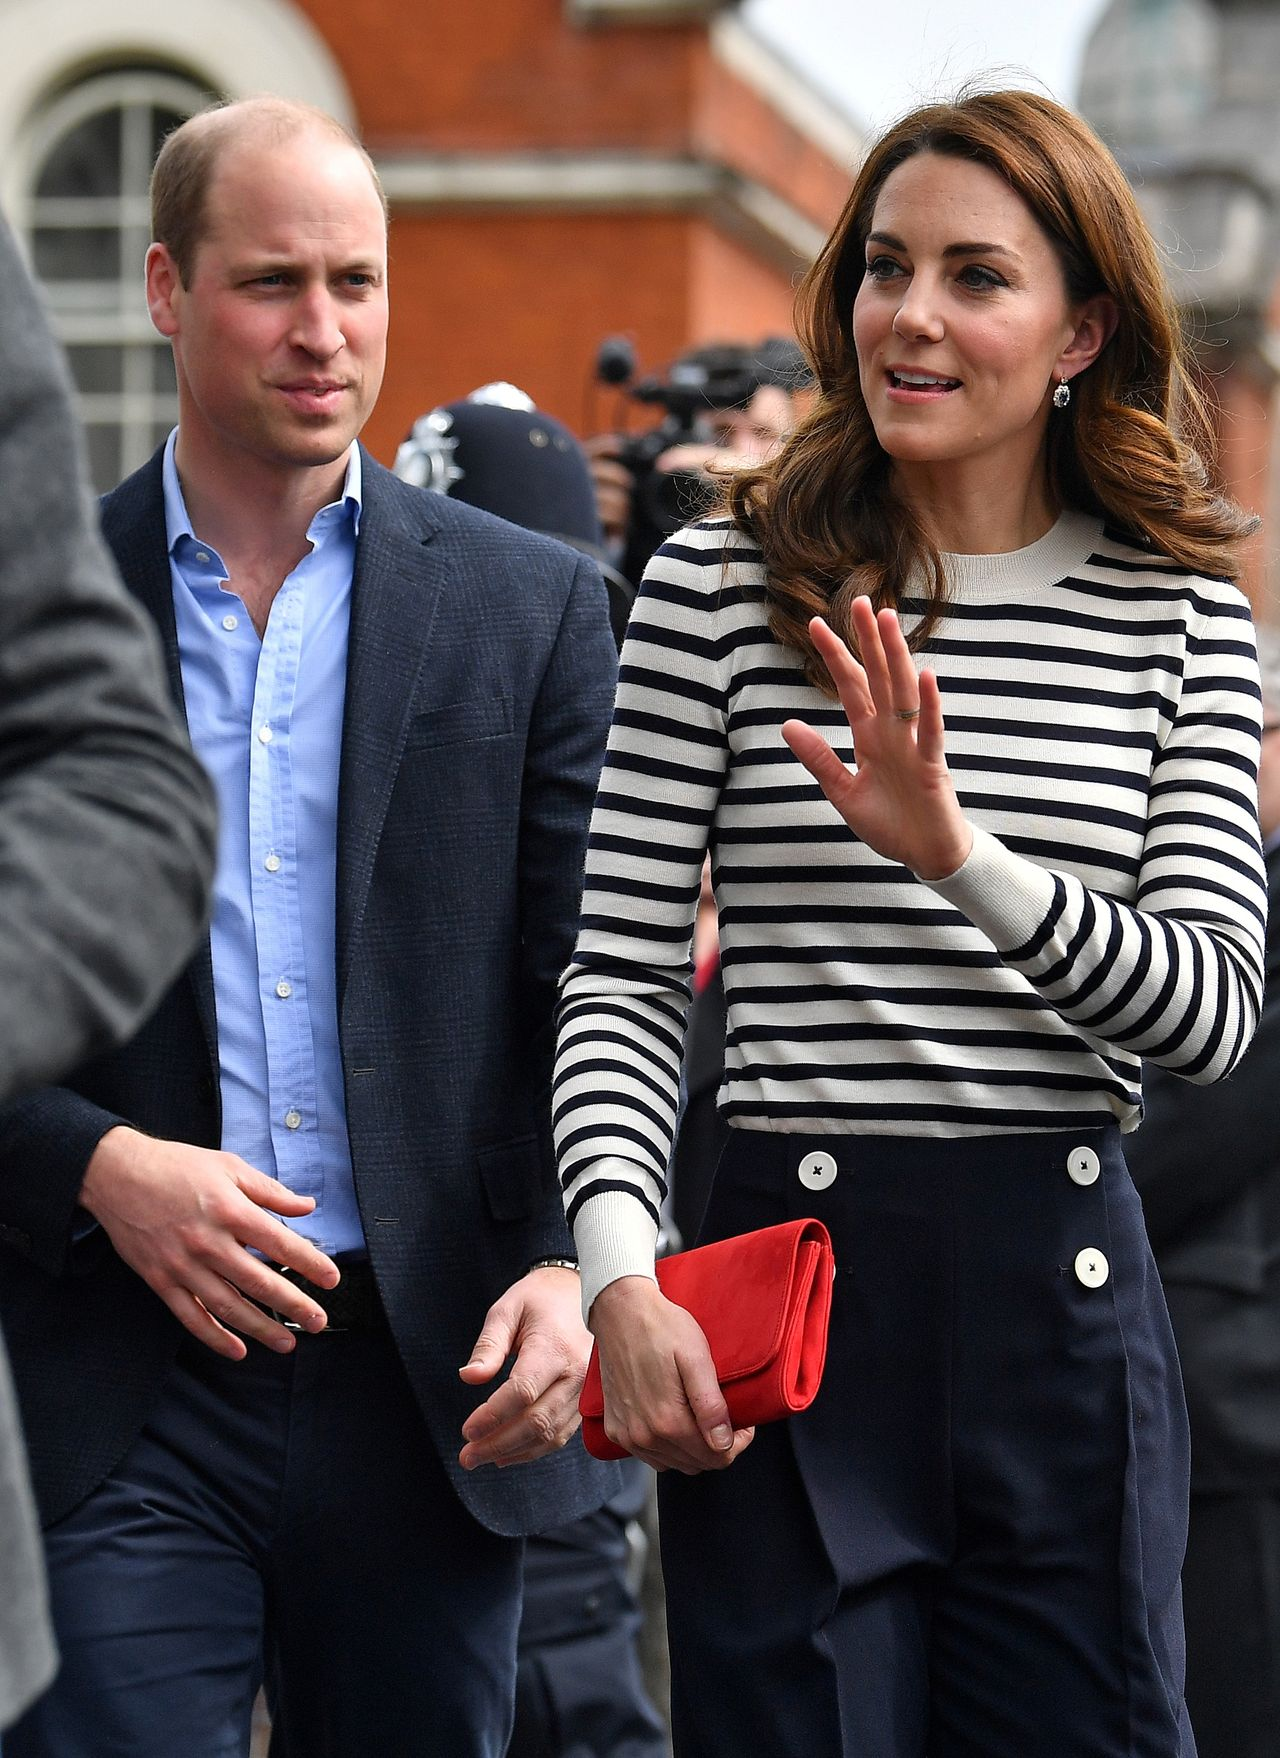 Britain's Prince William and Catherine, Duchess of Cambridge, launch the King's Cup Regatta in London